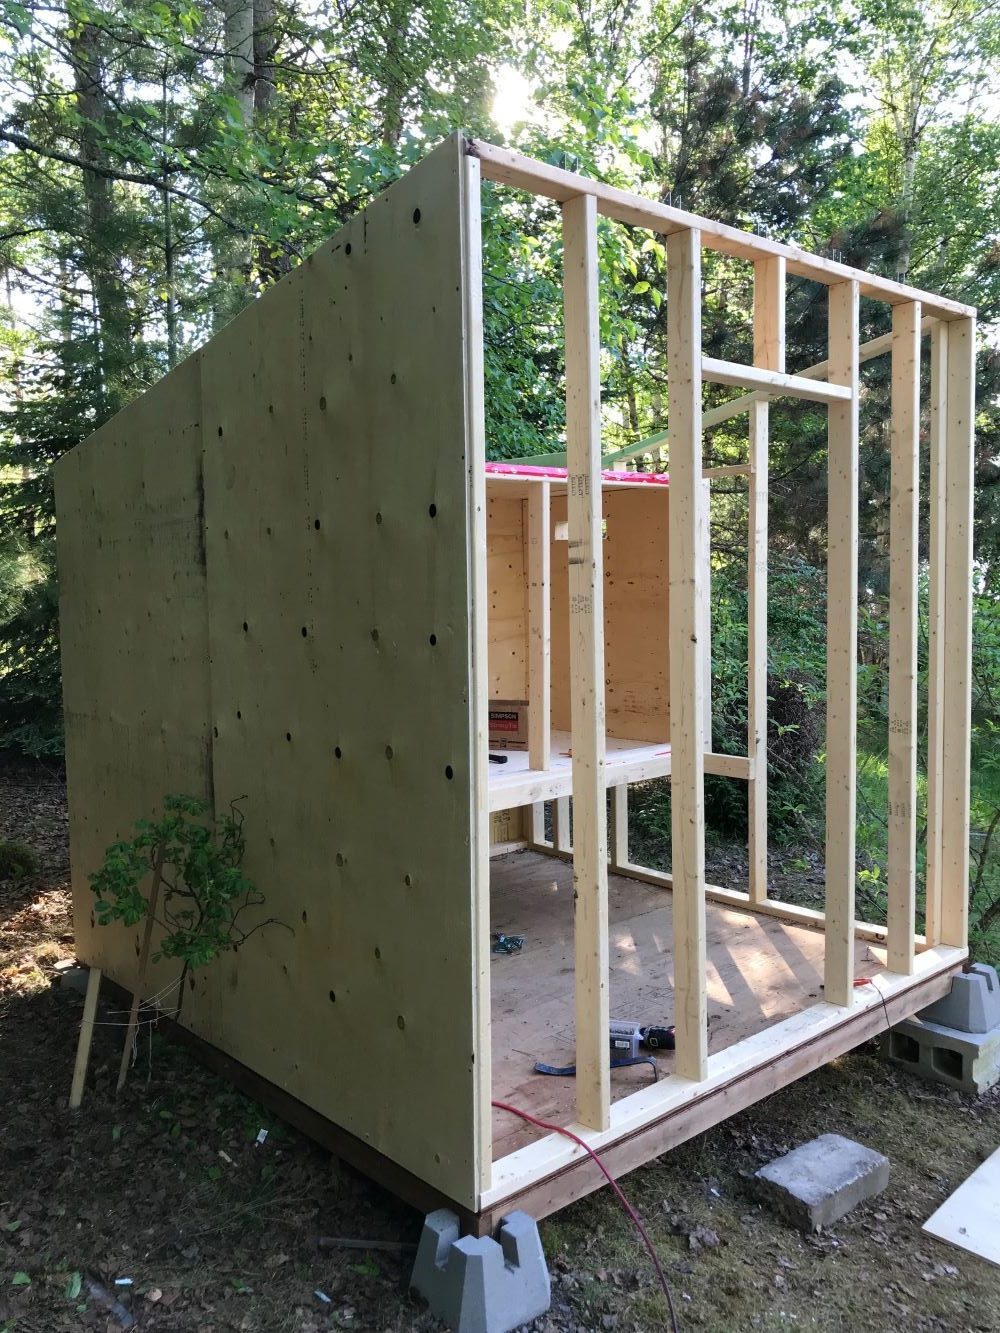 DIY Urban Chicken Coop Design